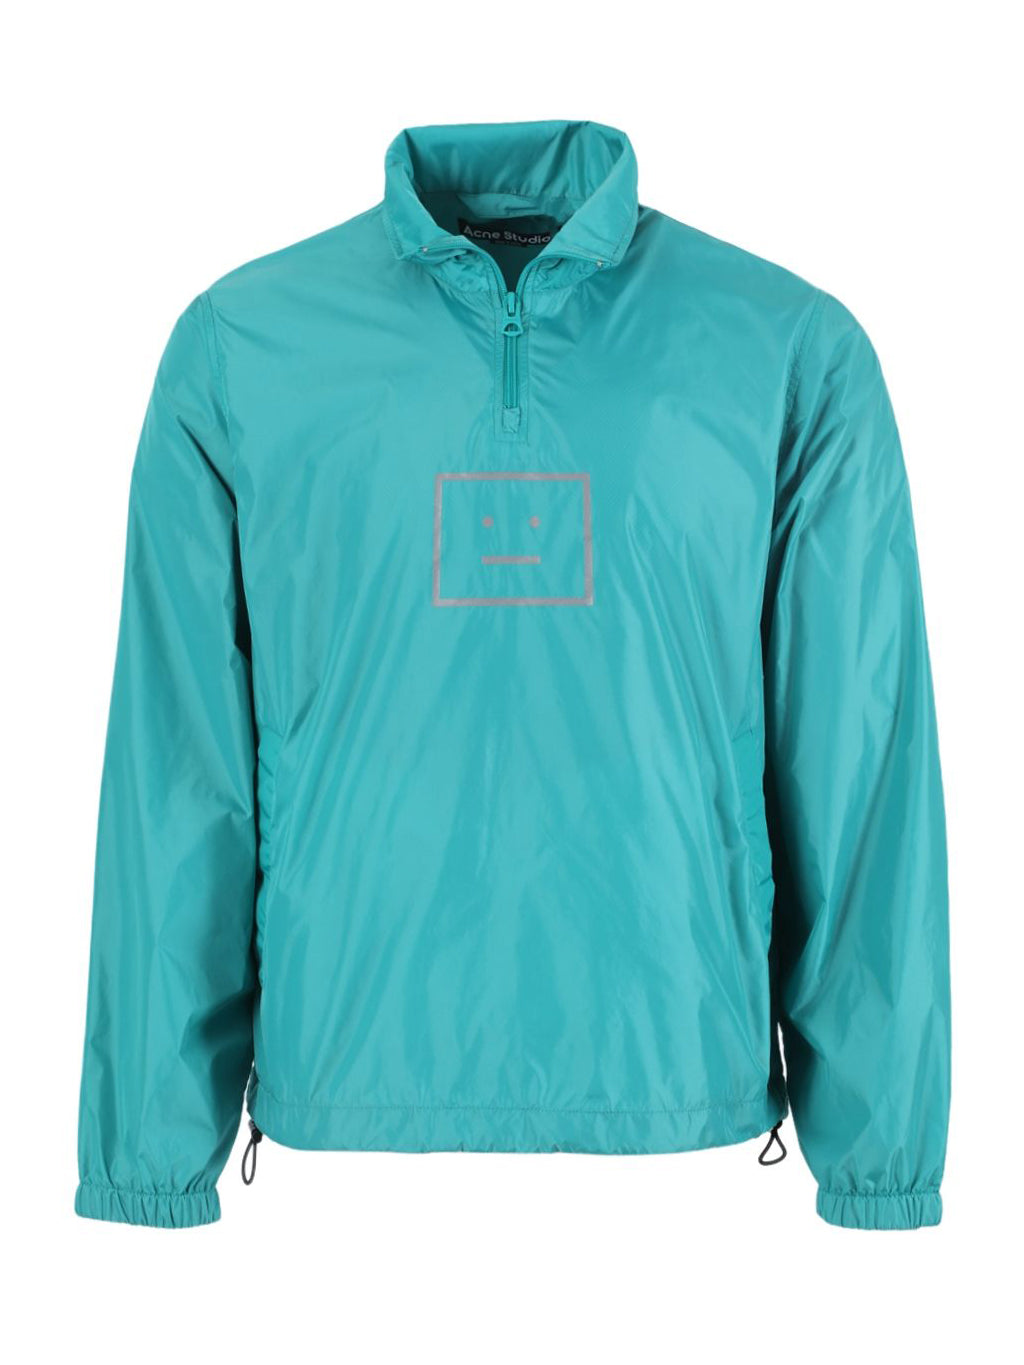 Green Oversize Half Zip Face Jacket